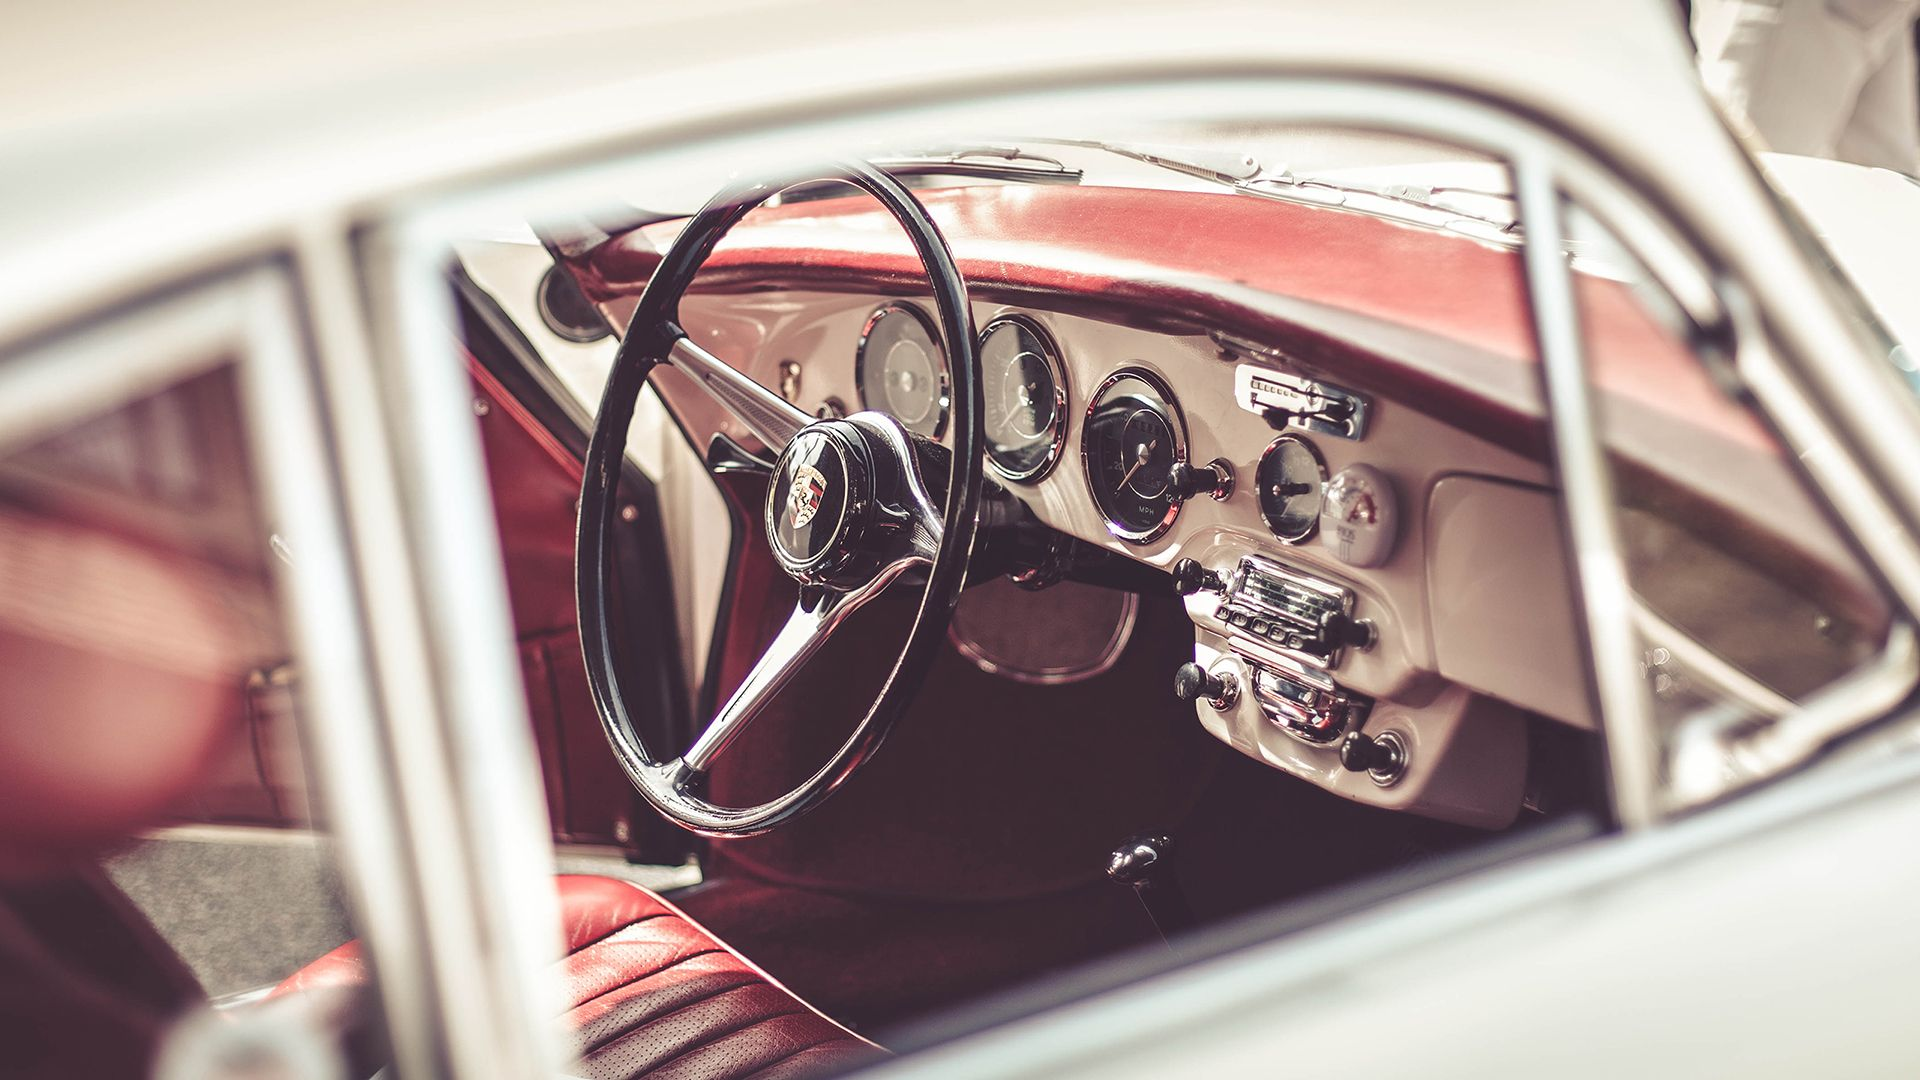 Awesome Car Interior Wallpaper 4038 1920 x 1080 - WallpaperLayer.com